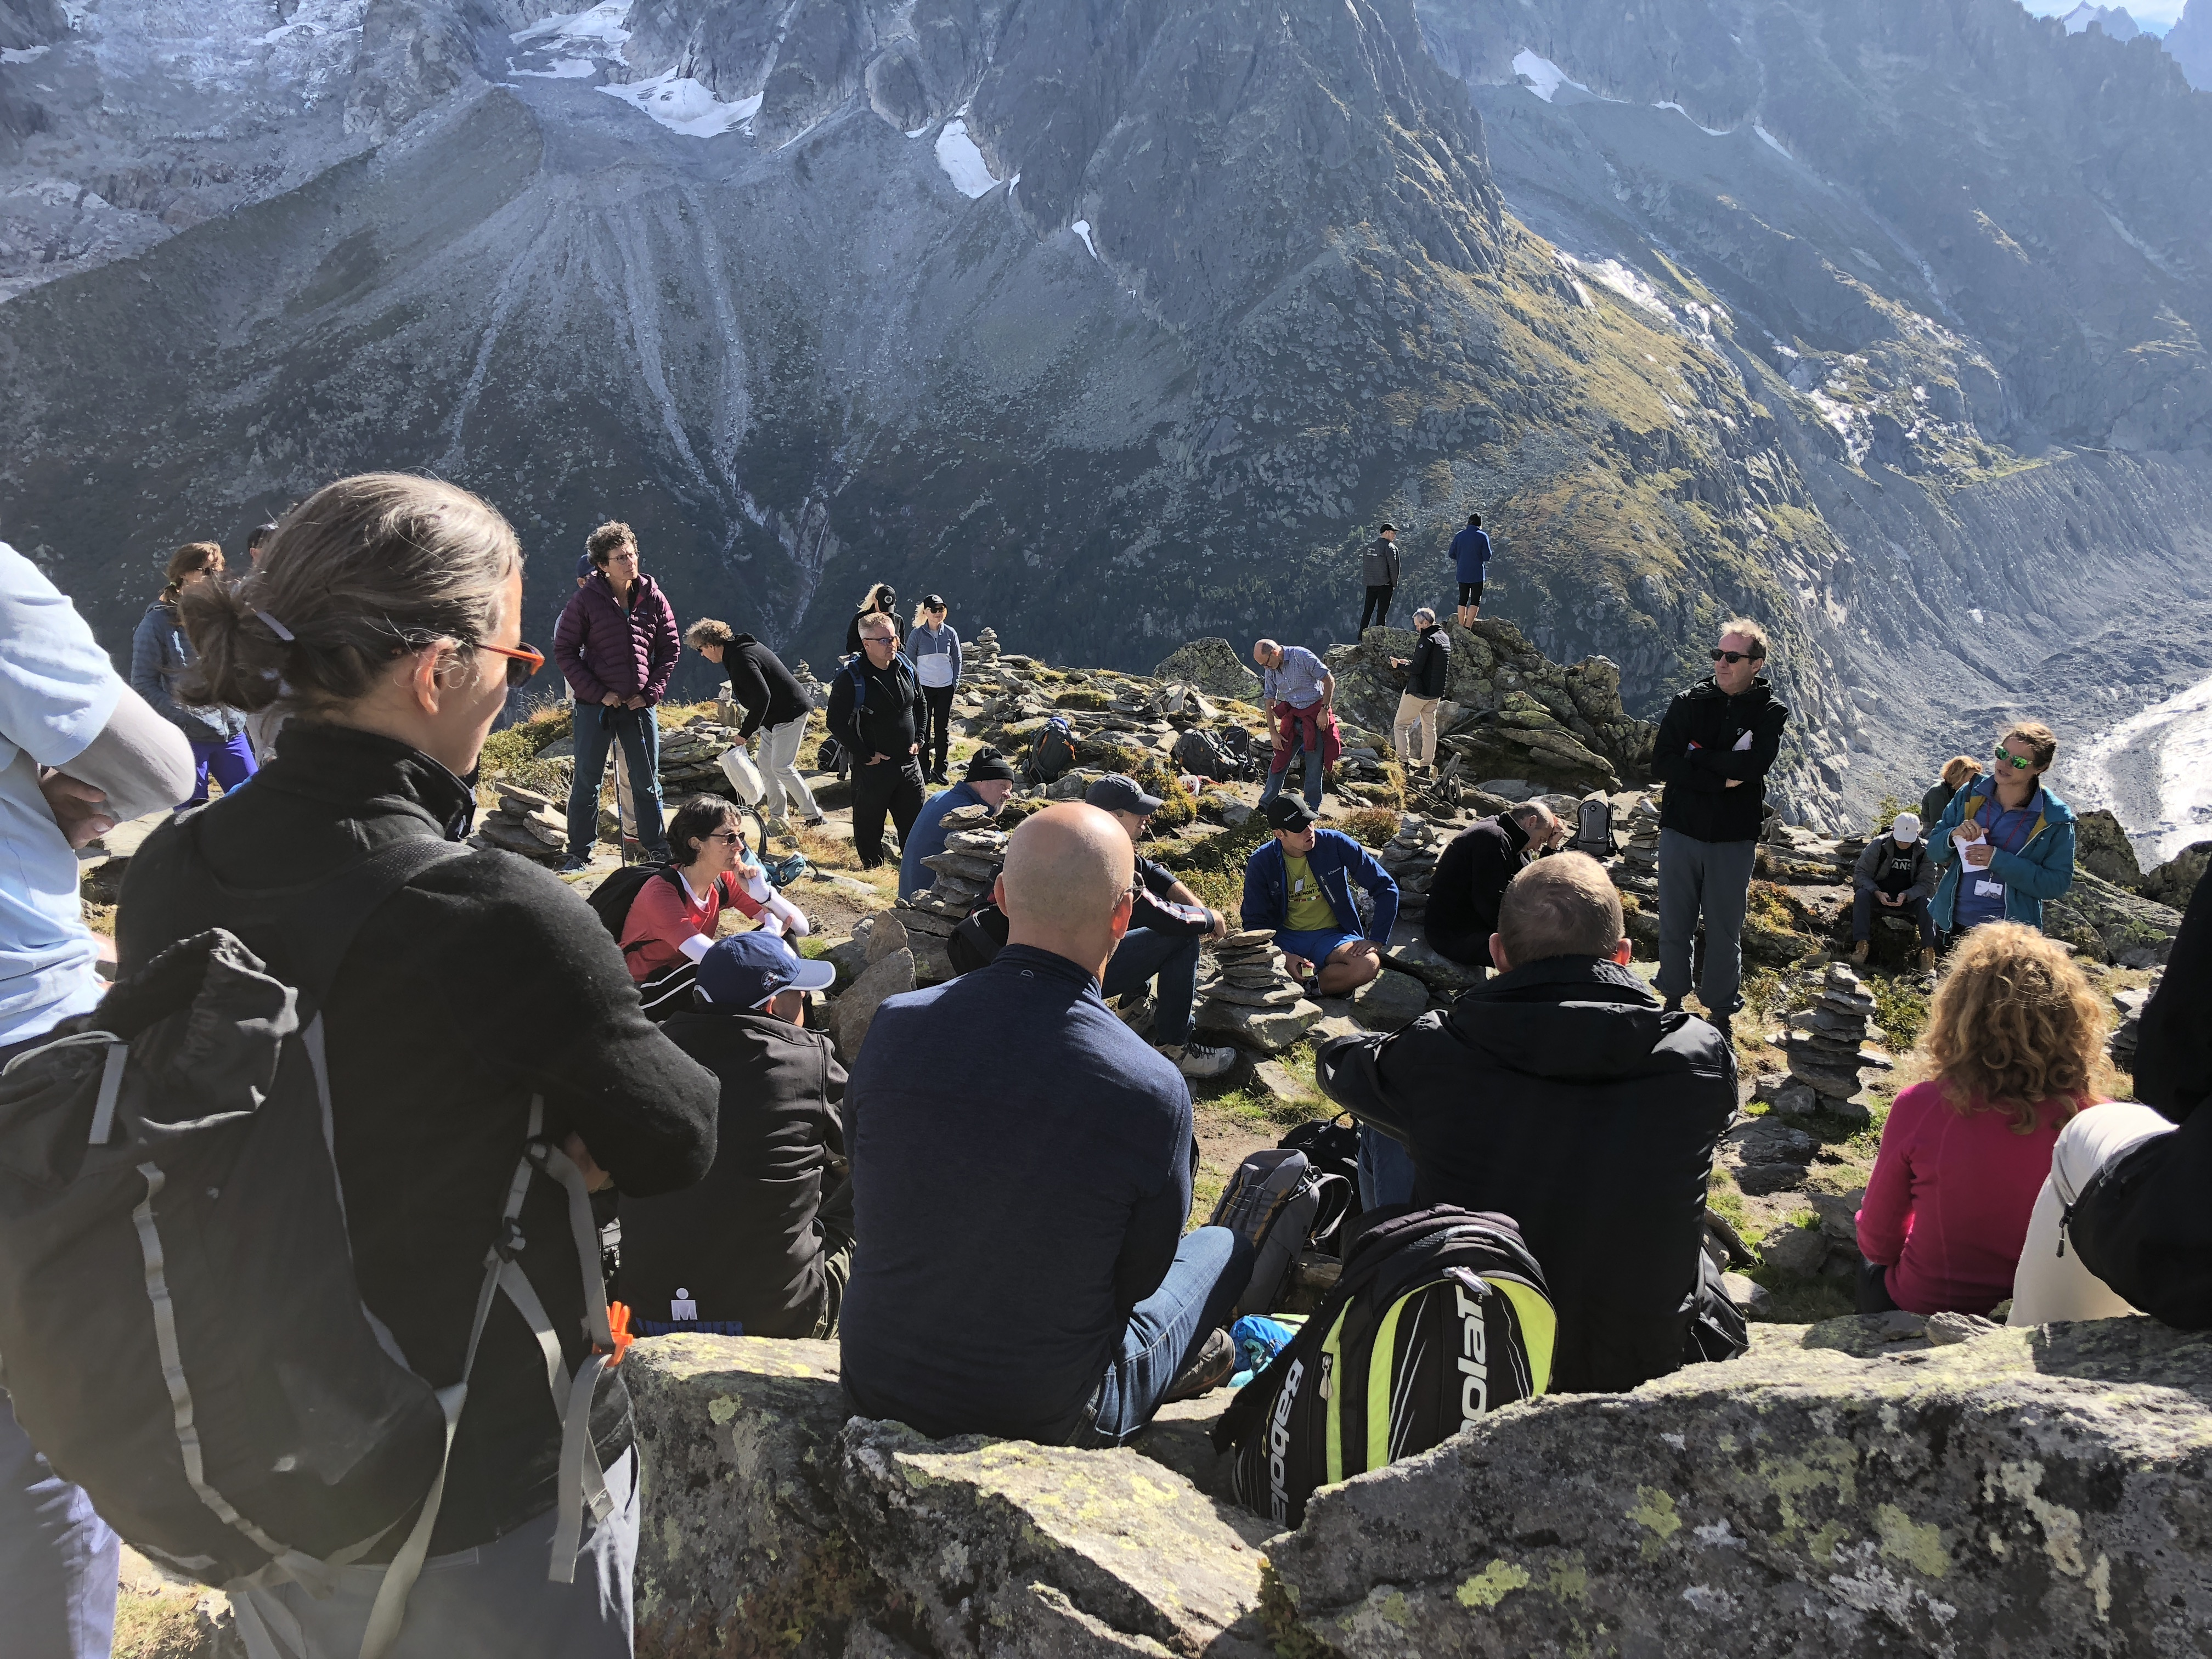 Summit of Minds delegates hiking in the mountains in Chamonix, France